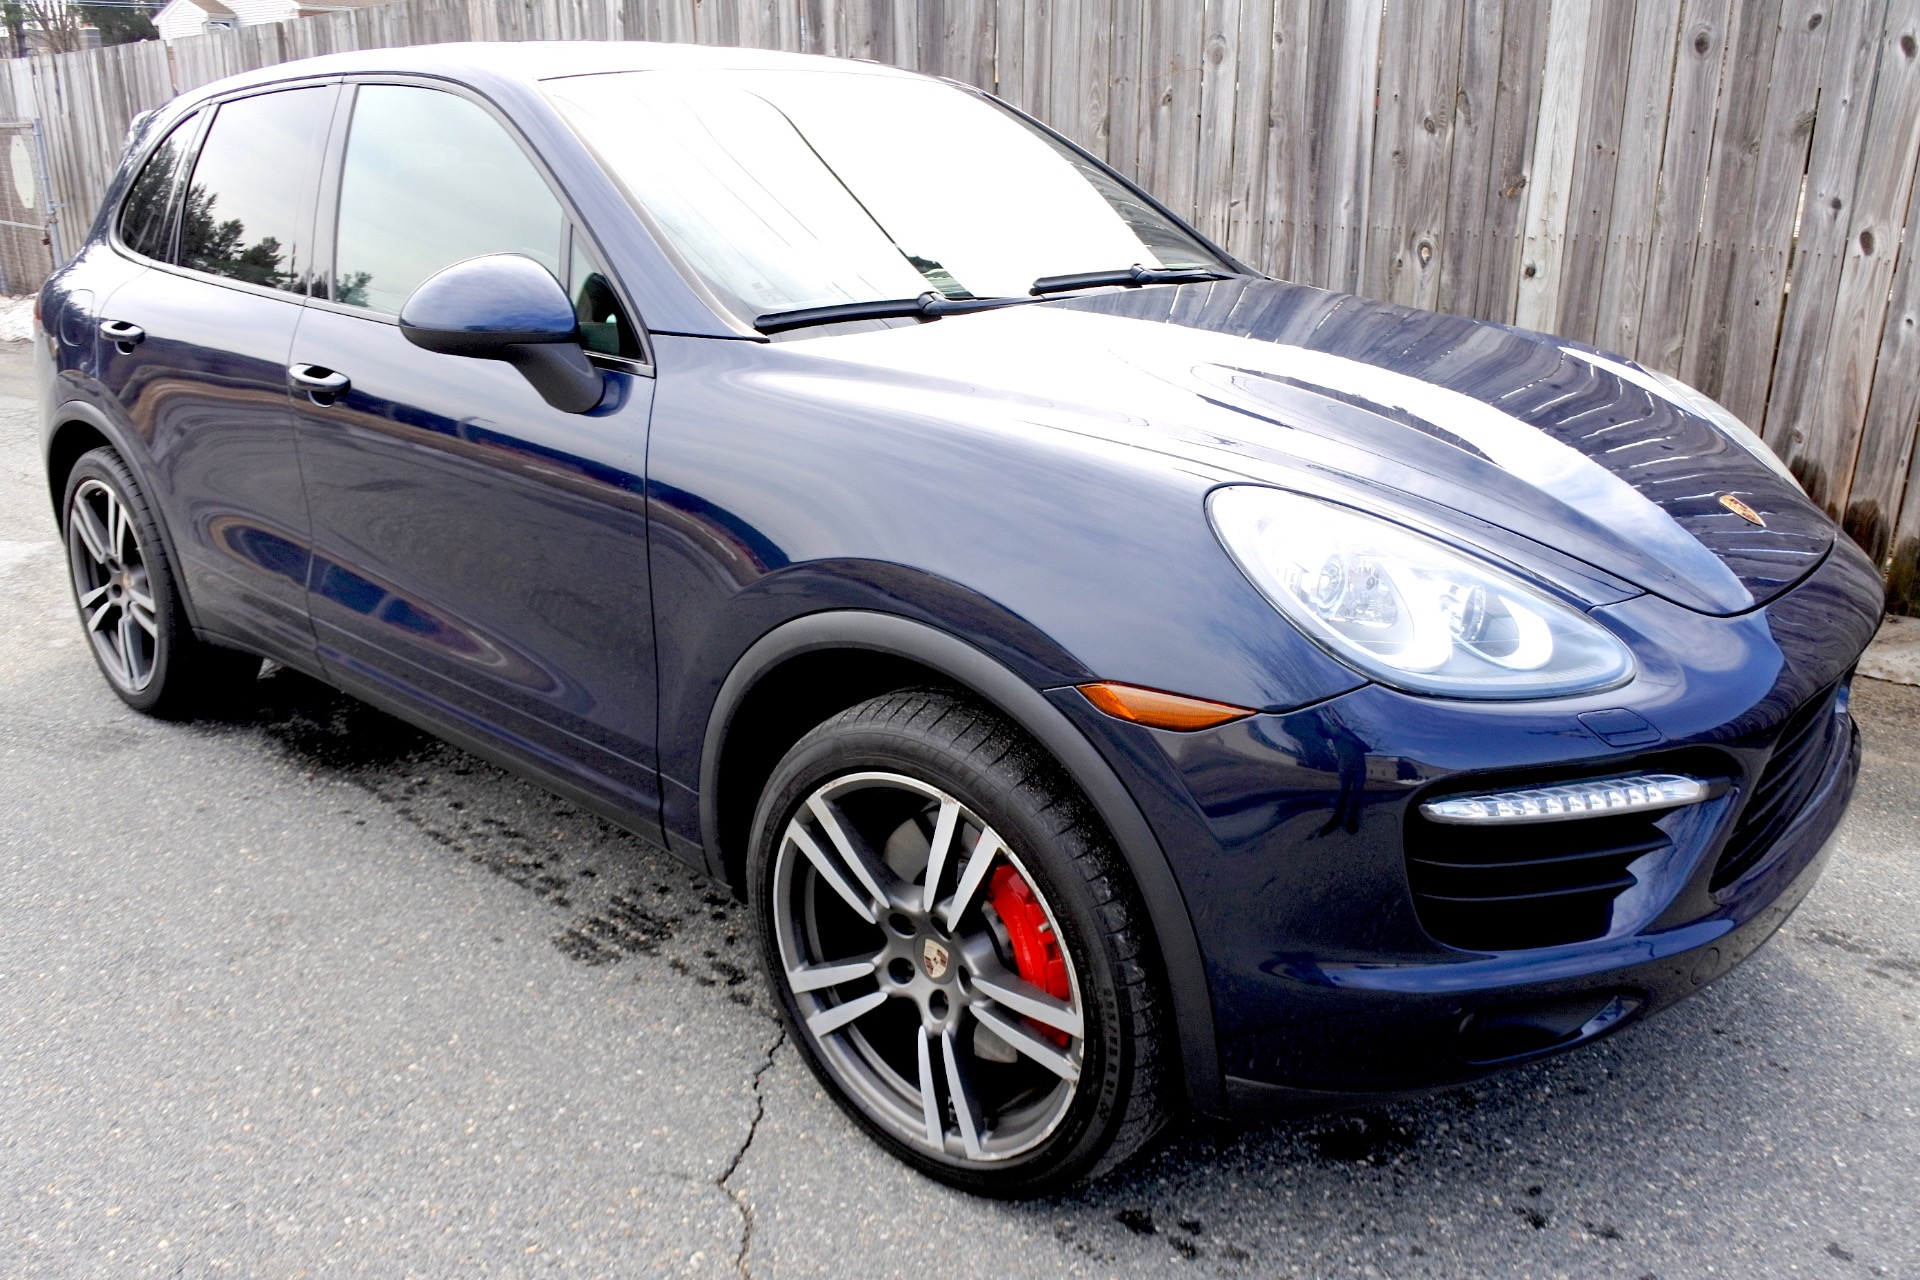 Used 2012 Porsche Cayenne AWD 4dr Turbo Used 2012 Porsche Cayenne AWD 4dr Turbo for sale  at Metro West Motorcars LLC in Shrewsbury MA 7